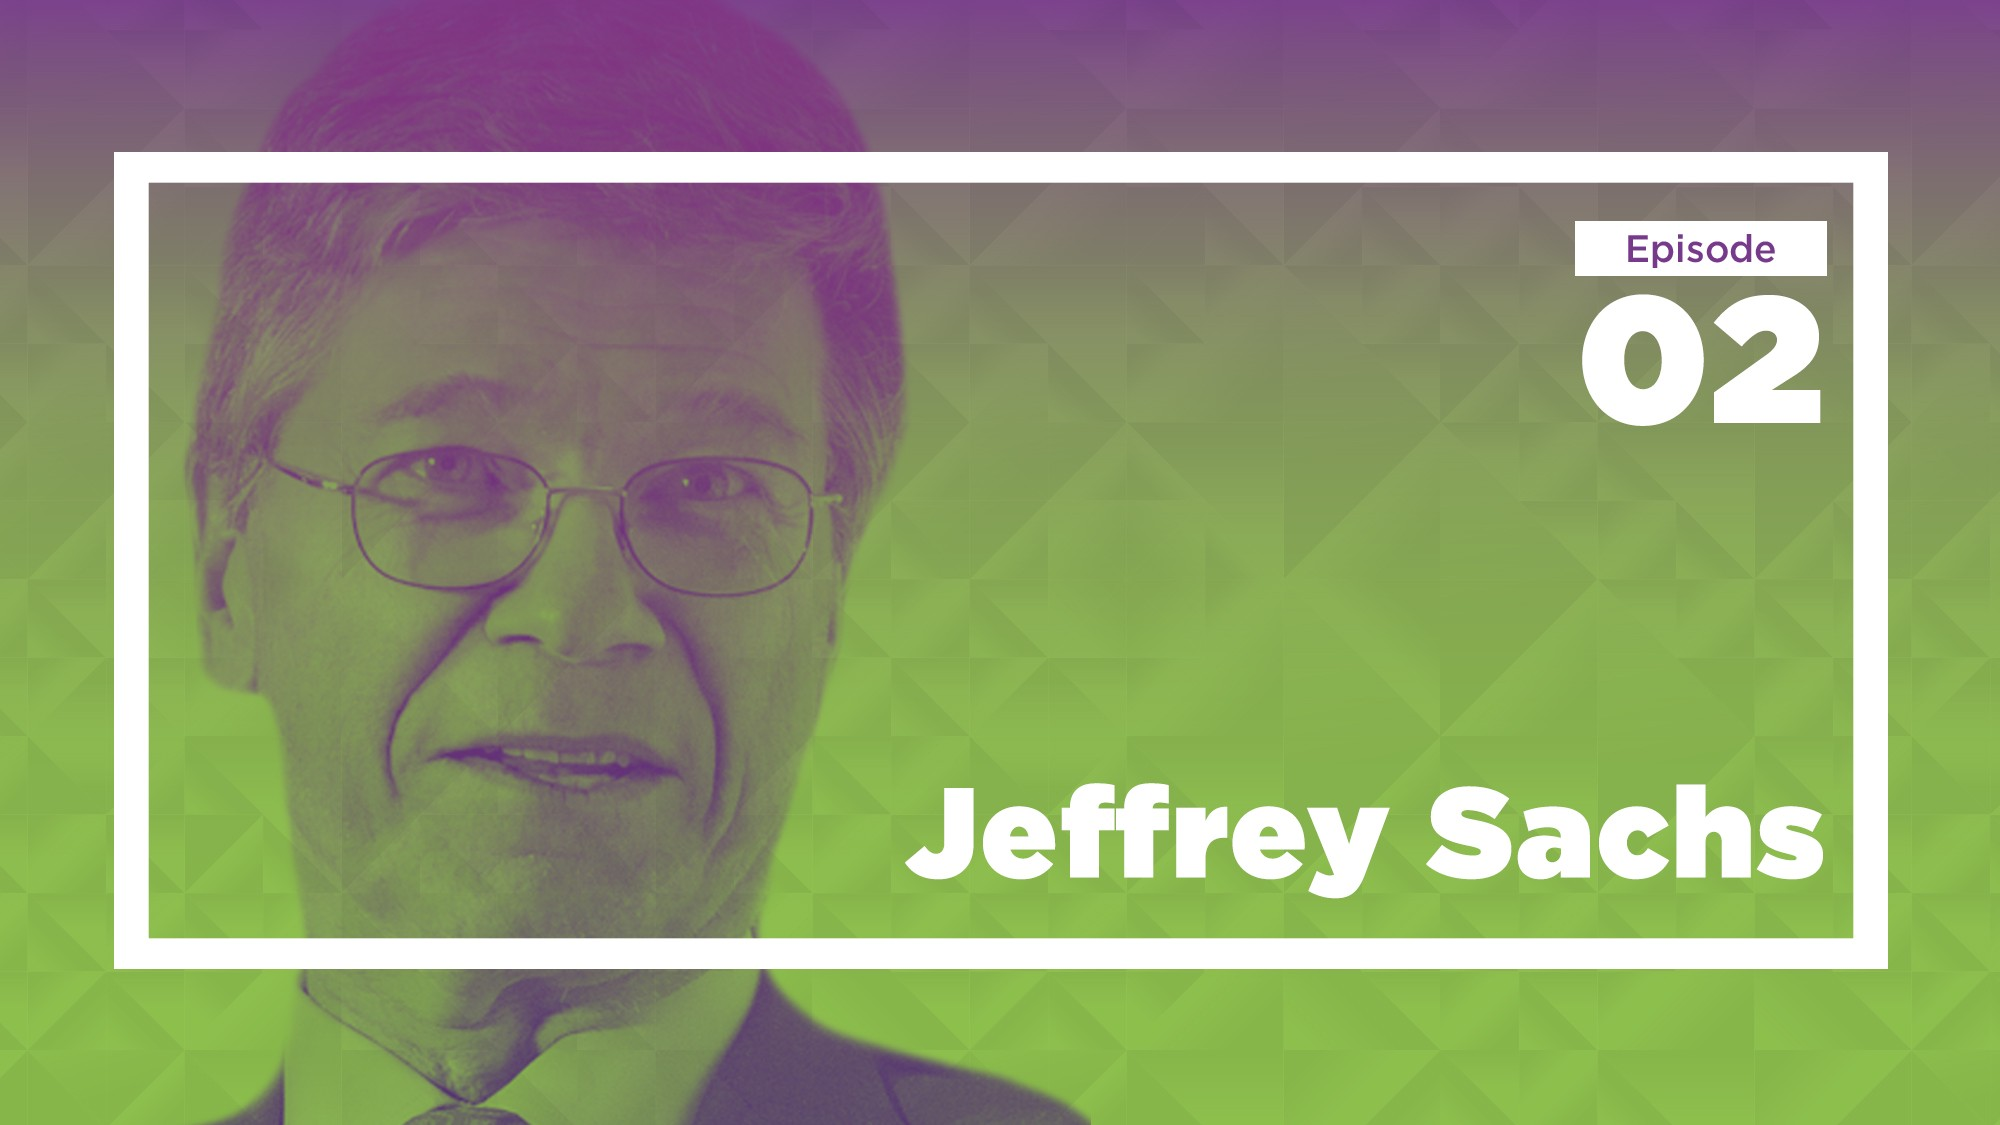 Jeffrey Sachs on Charter Cities and How to Reform Graduate